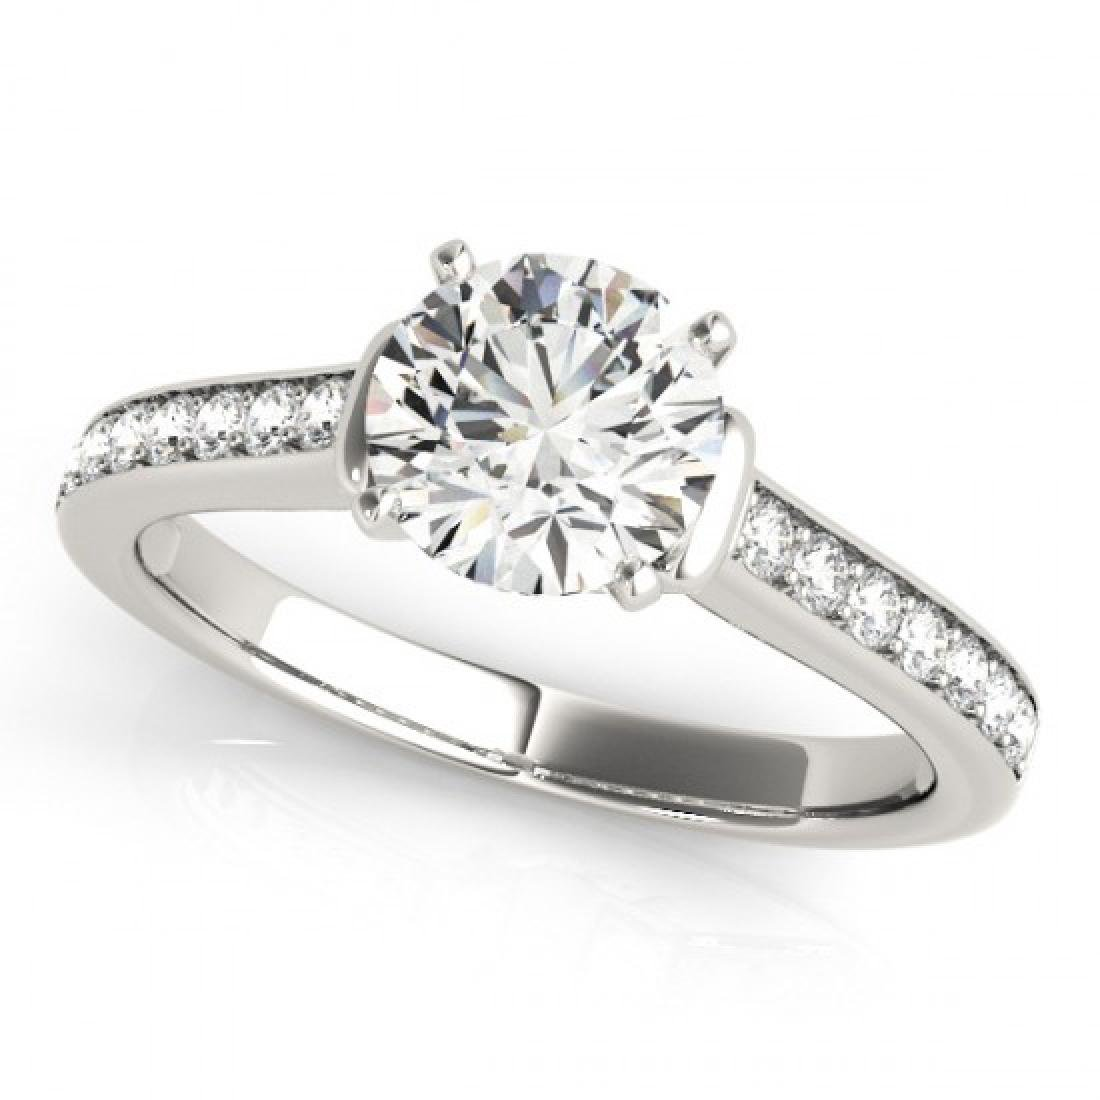 1.50 CTW VS/SI Diamond Solitaire Ring 18K White Gold